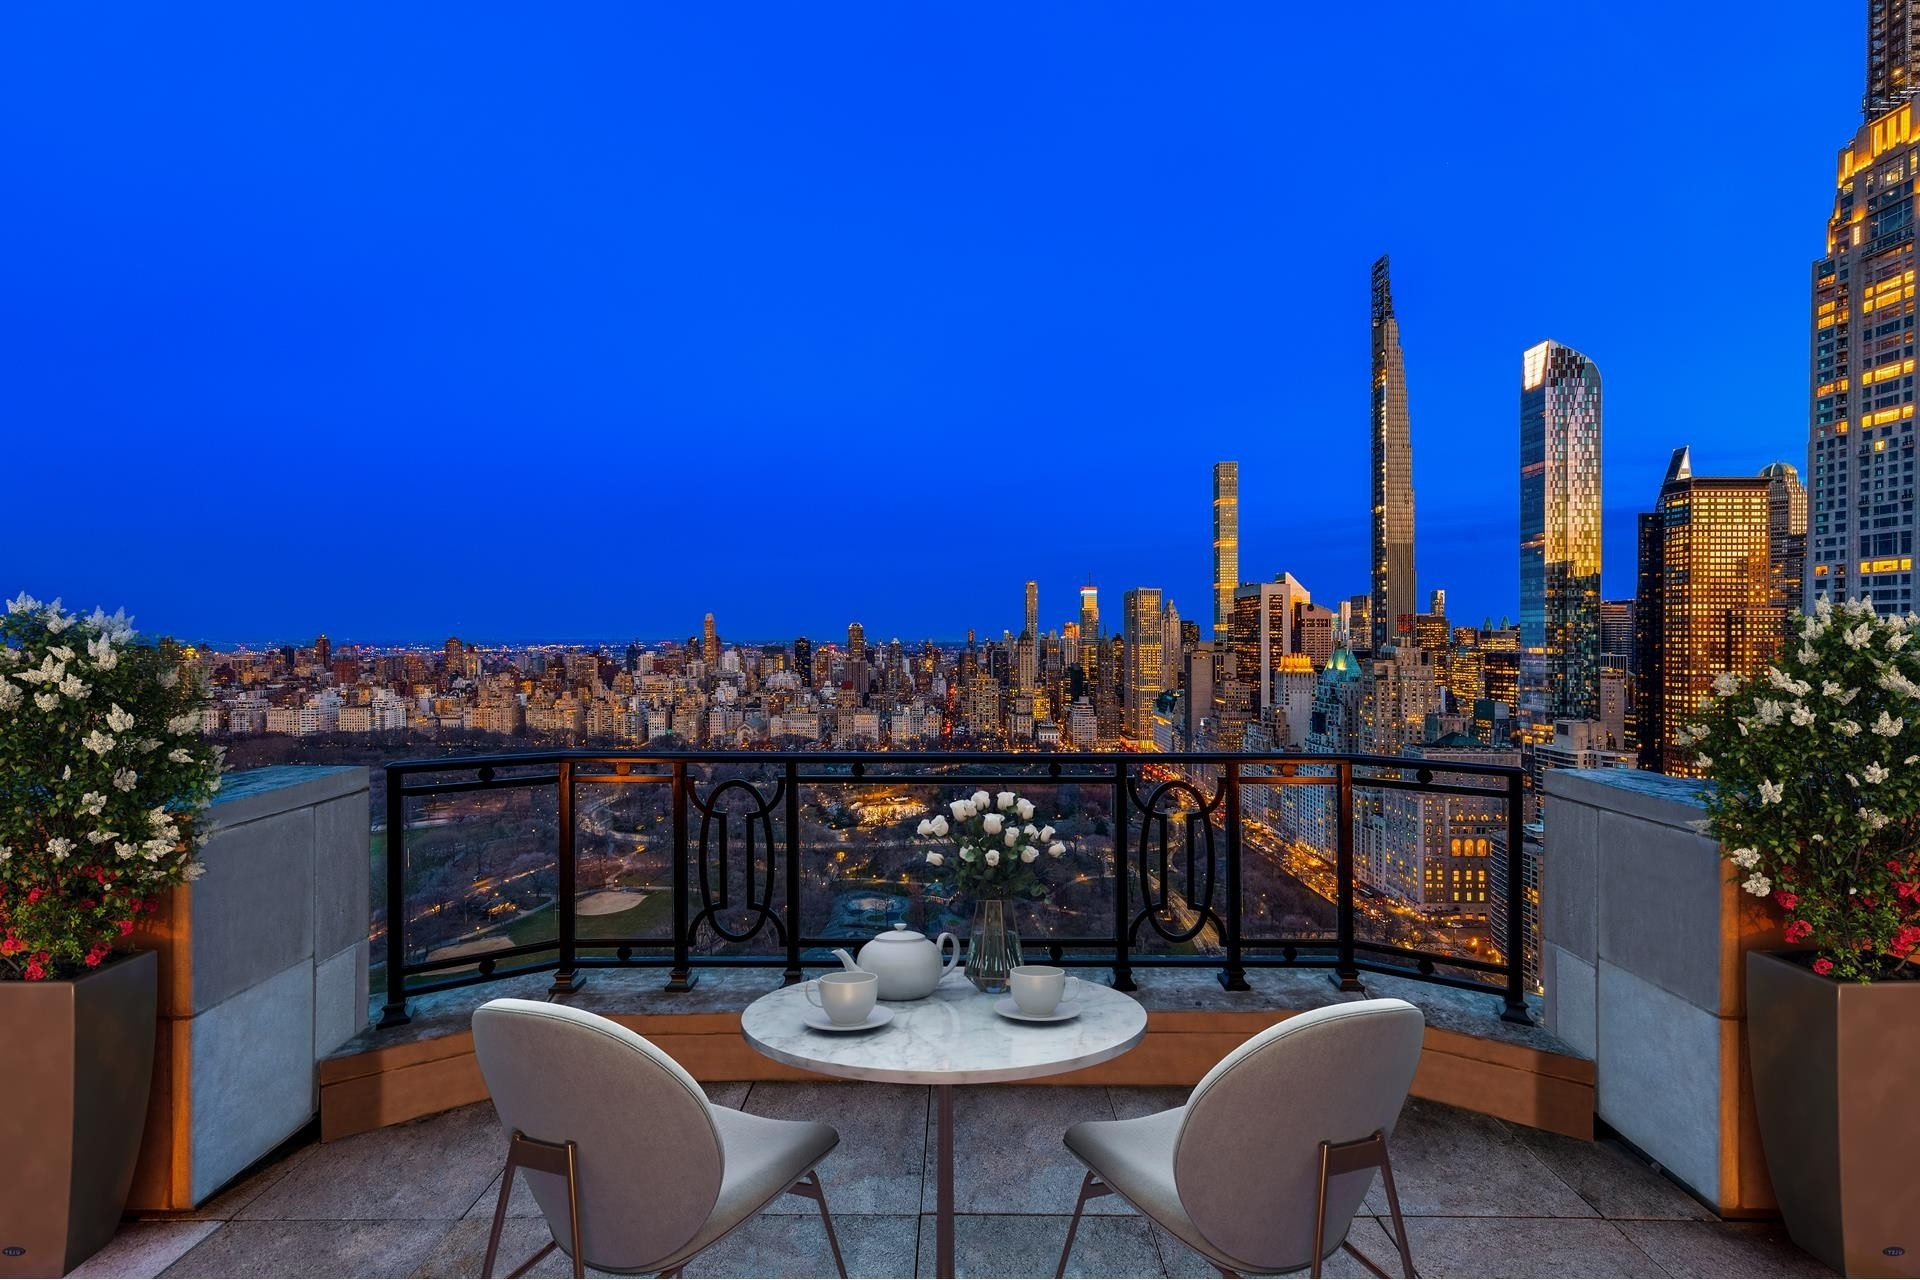 Property at 15 Cpw, 15 CENTRAL PARK W, PH41 Lincoln Square, New York, NY 10023